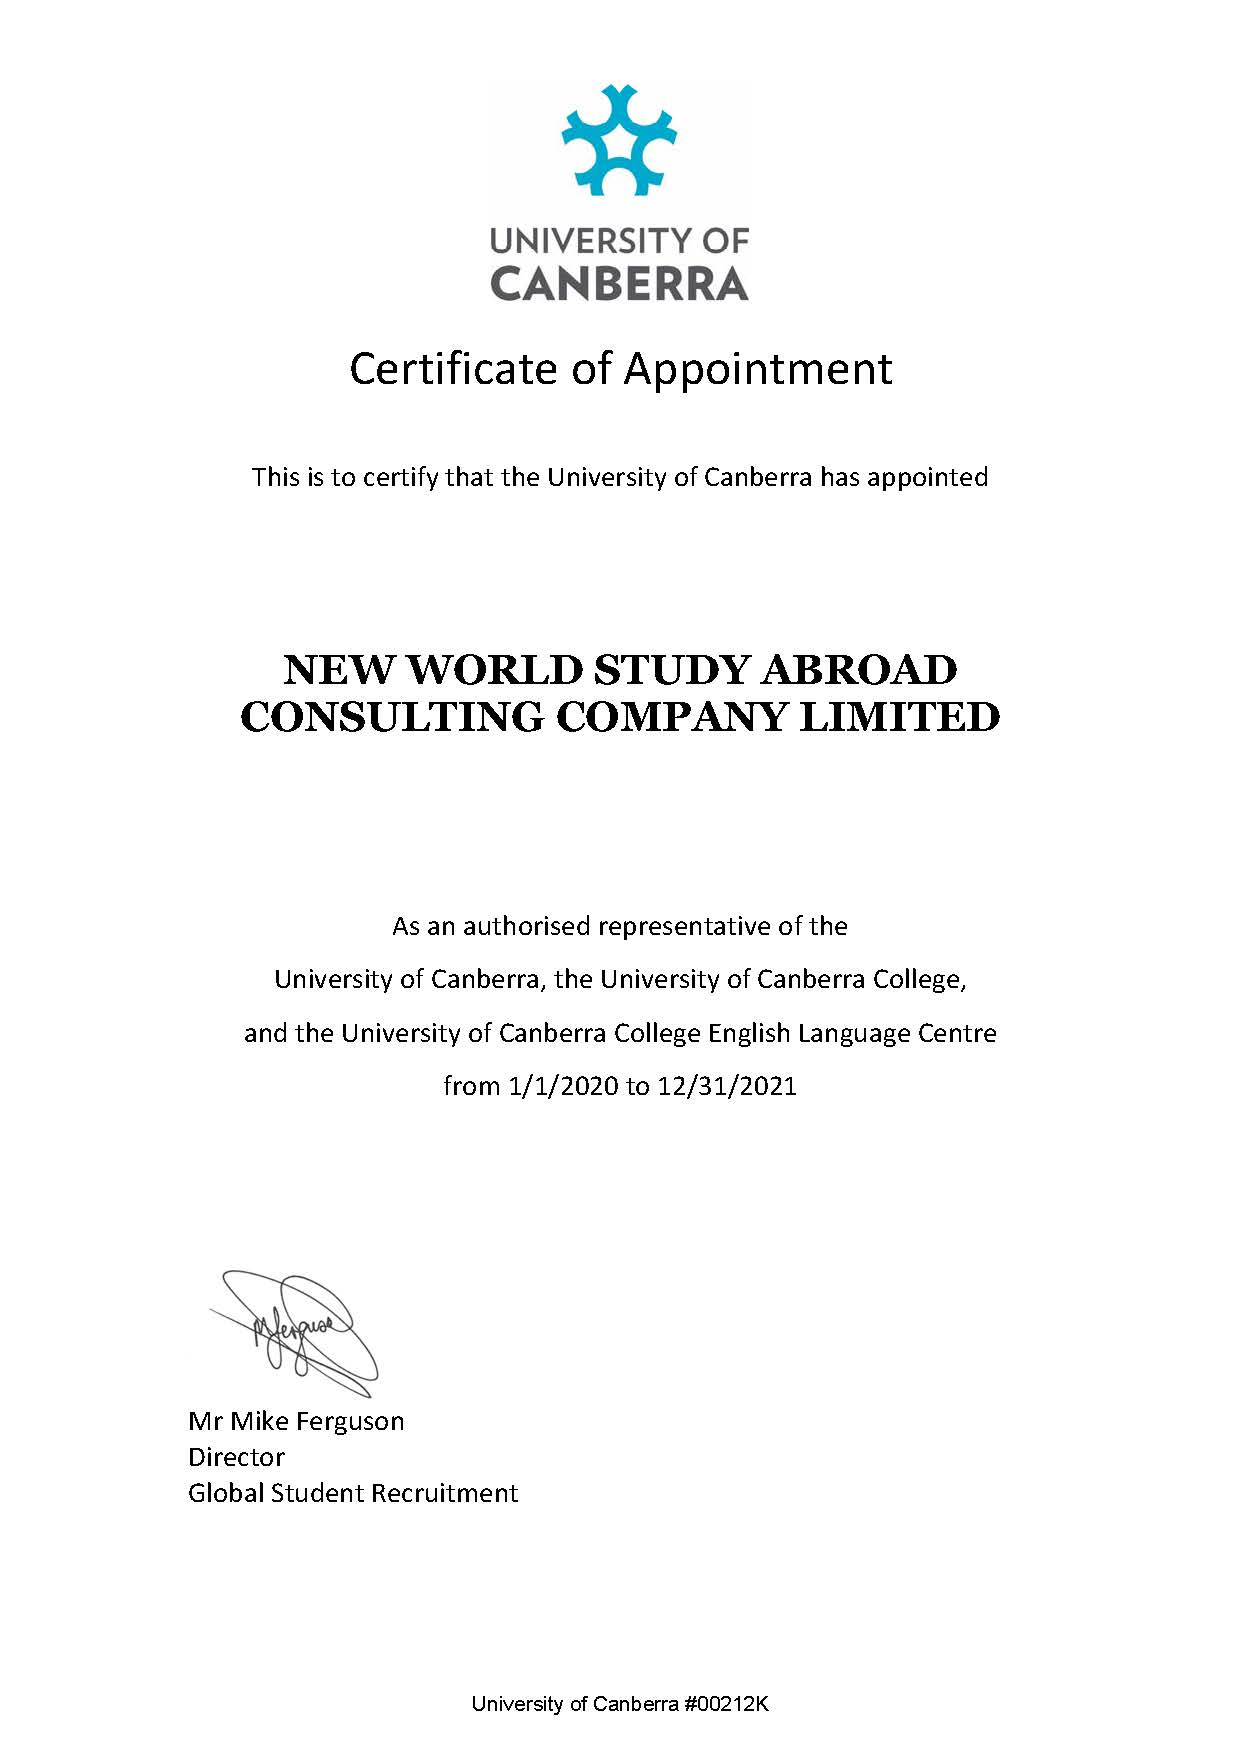 University of Canberra - Canberra, ACT , Úc